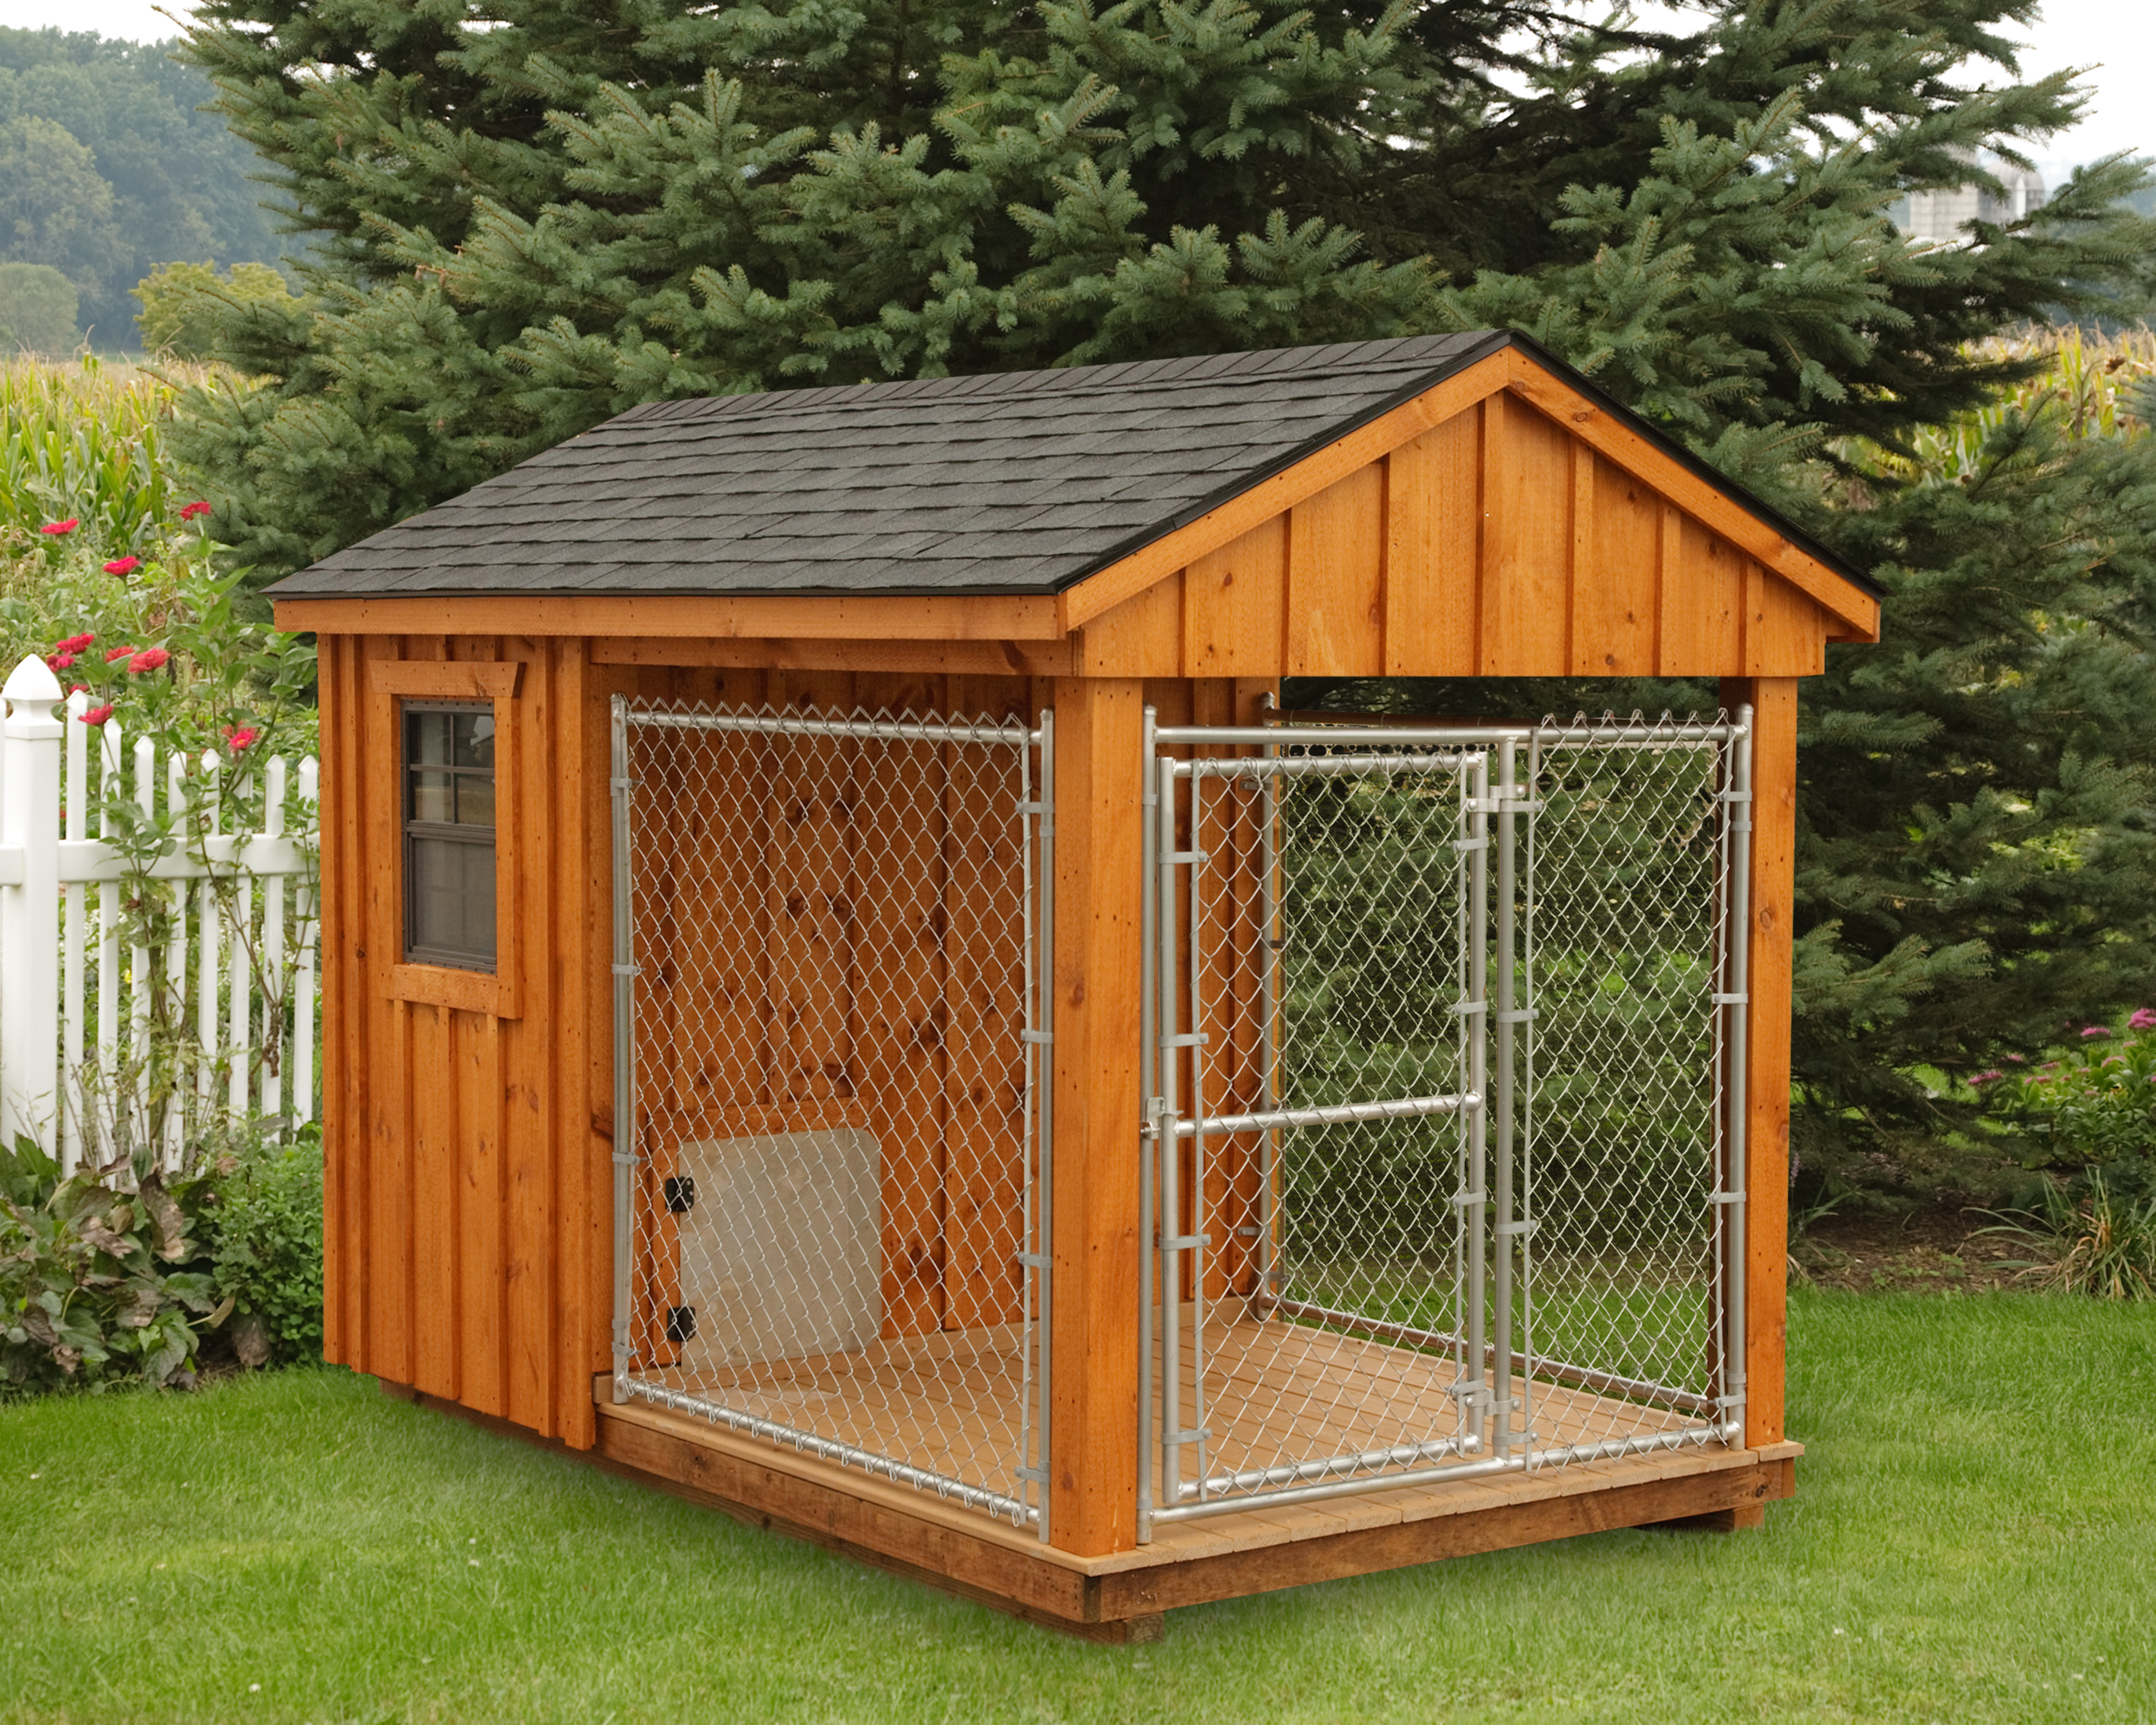 Small Dog Sheds For Sale